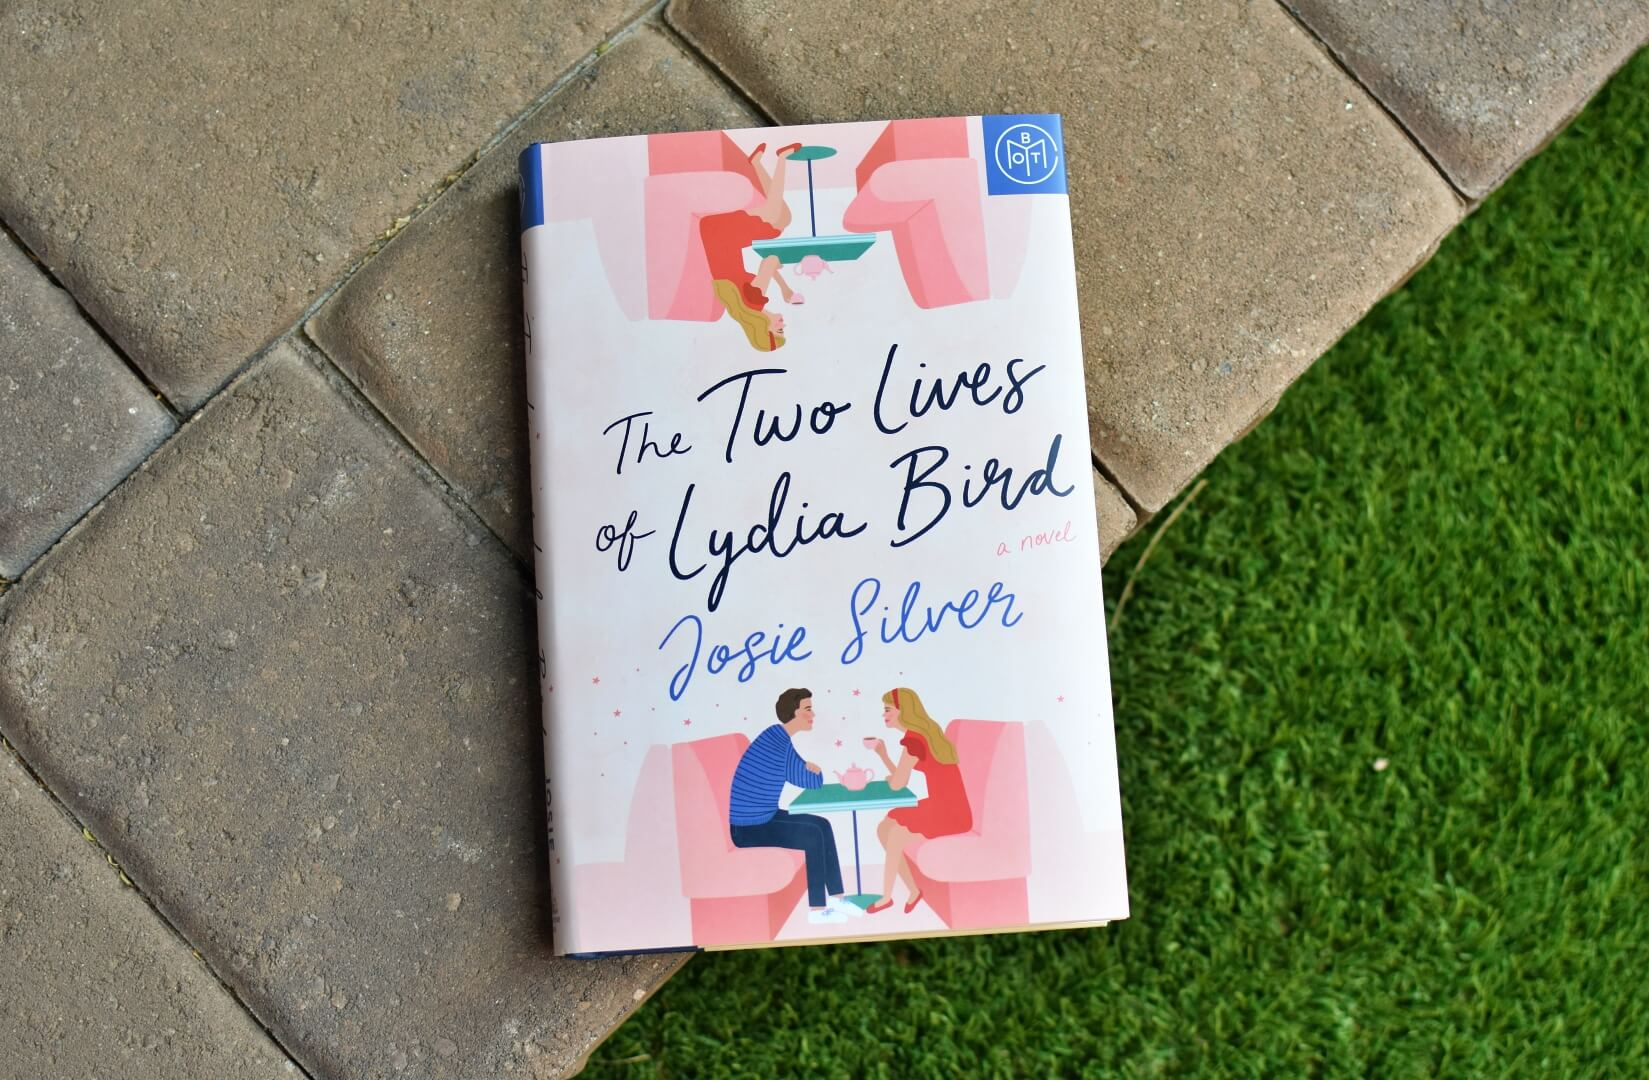 review for the two lives of lydia bird - book club chat